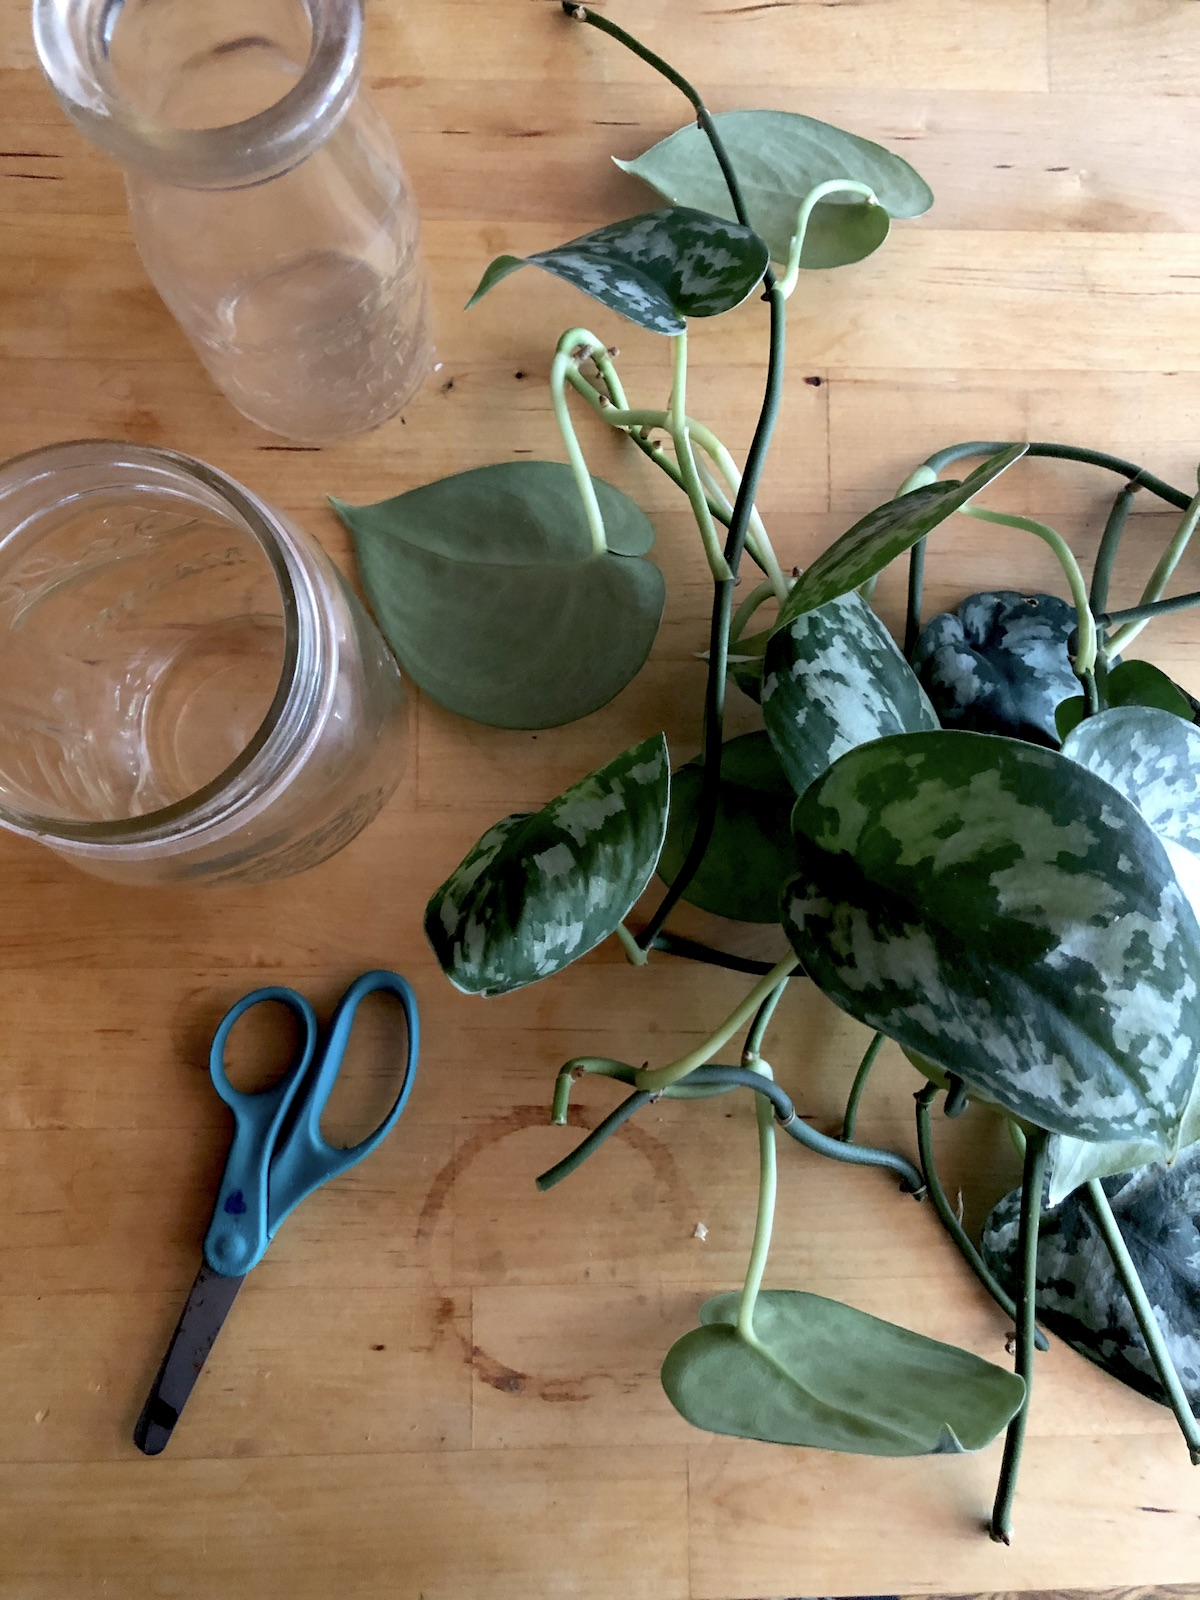 plant-propagation-glass-jars-leaf-cuttings-and-supplies